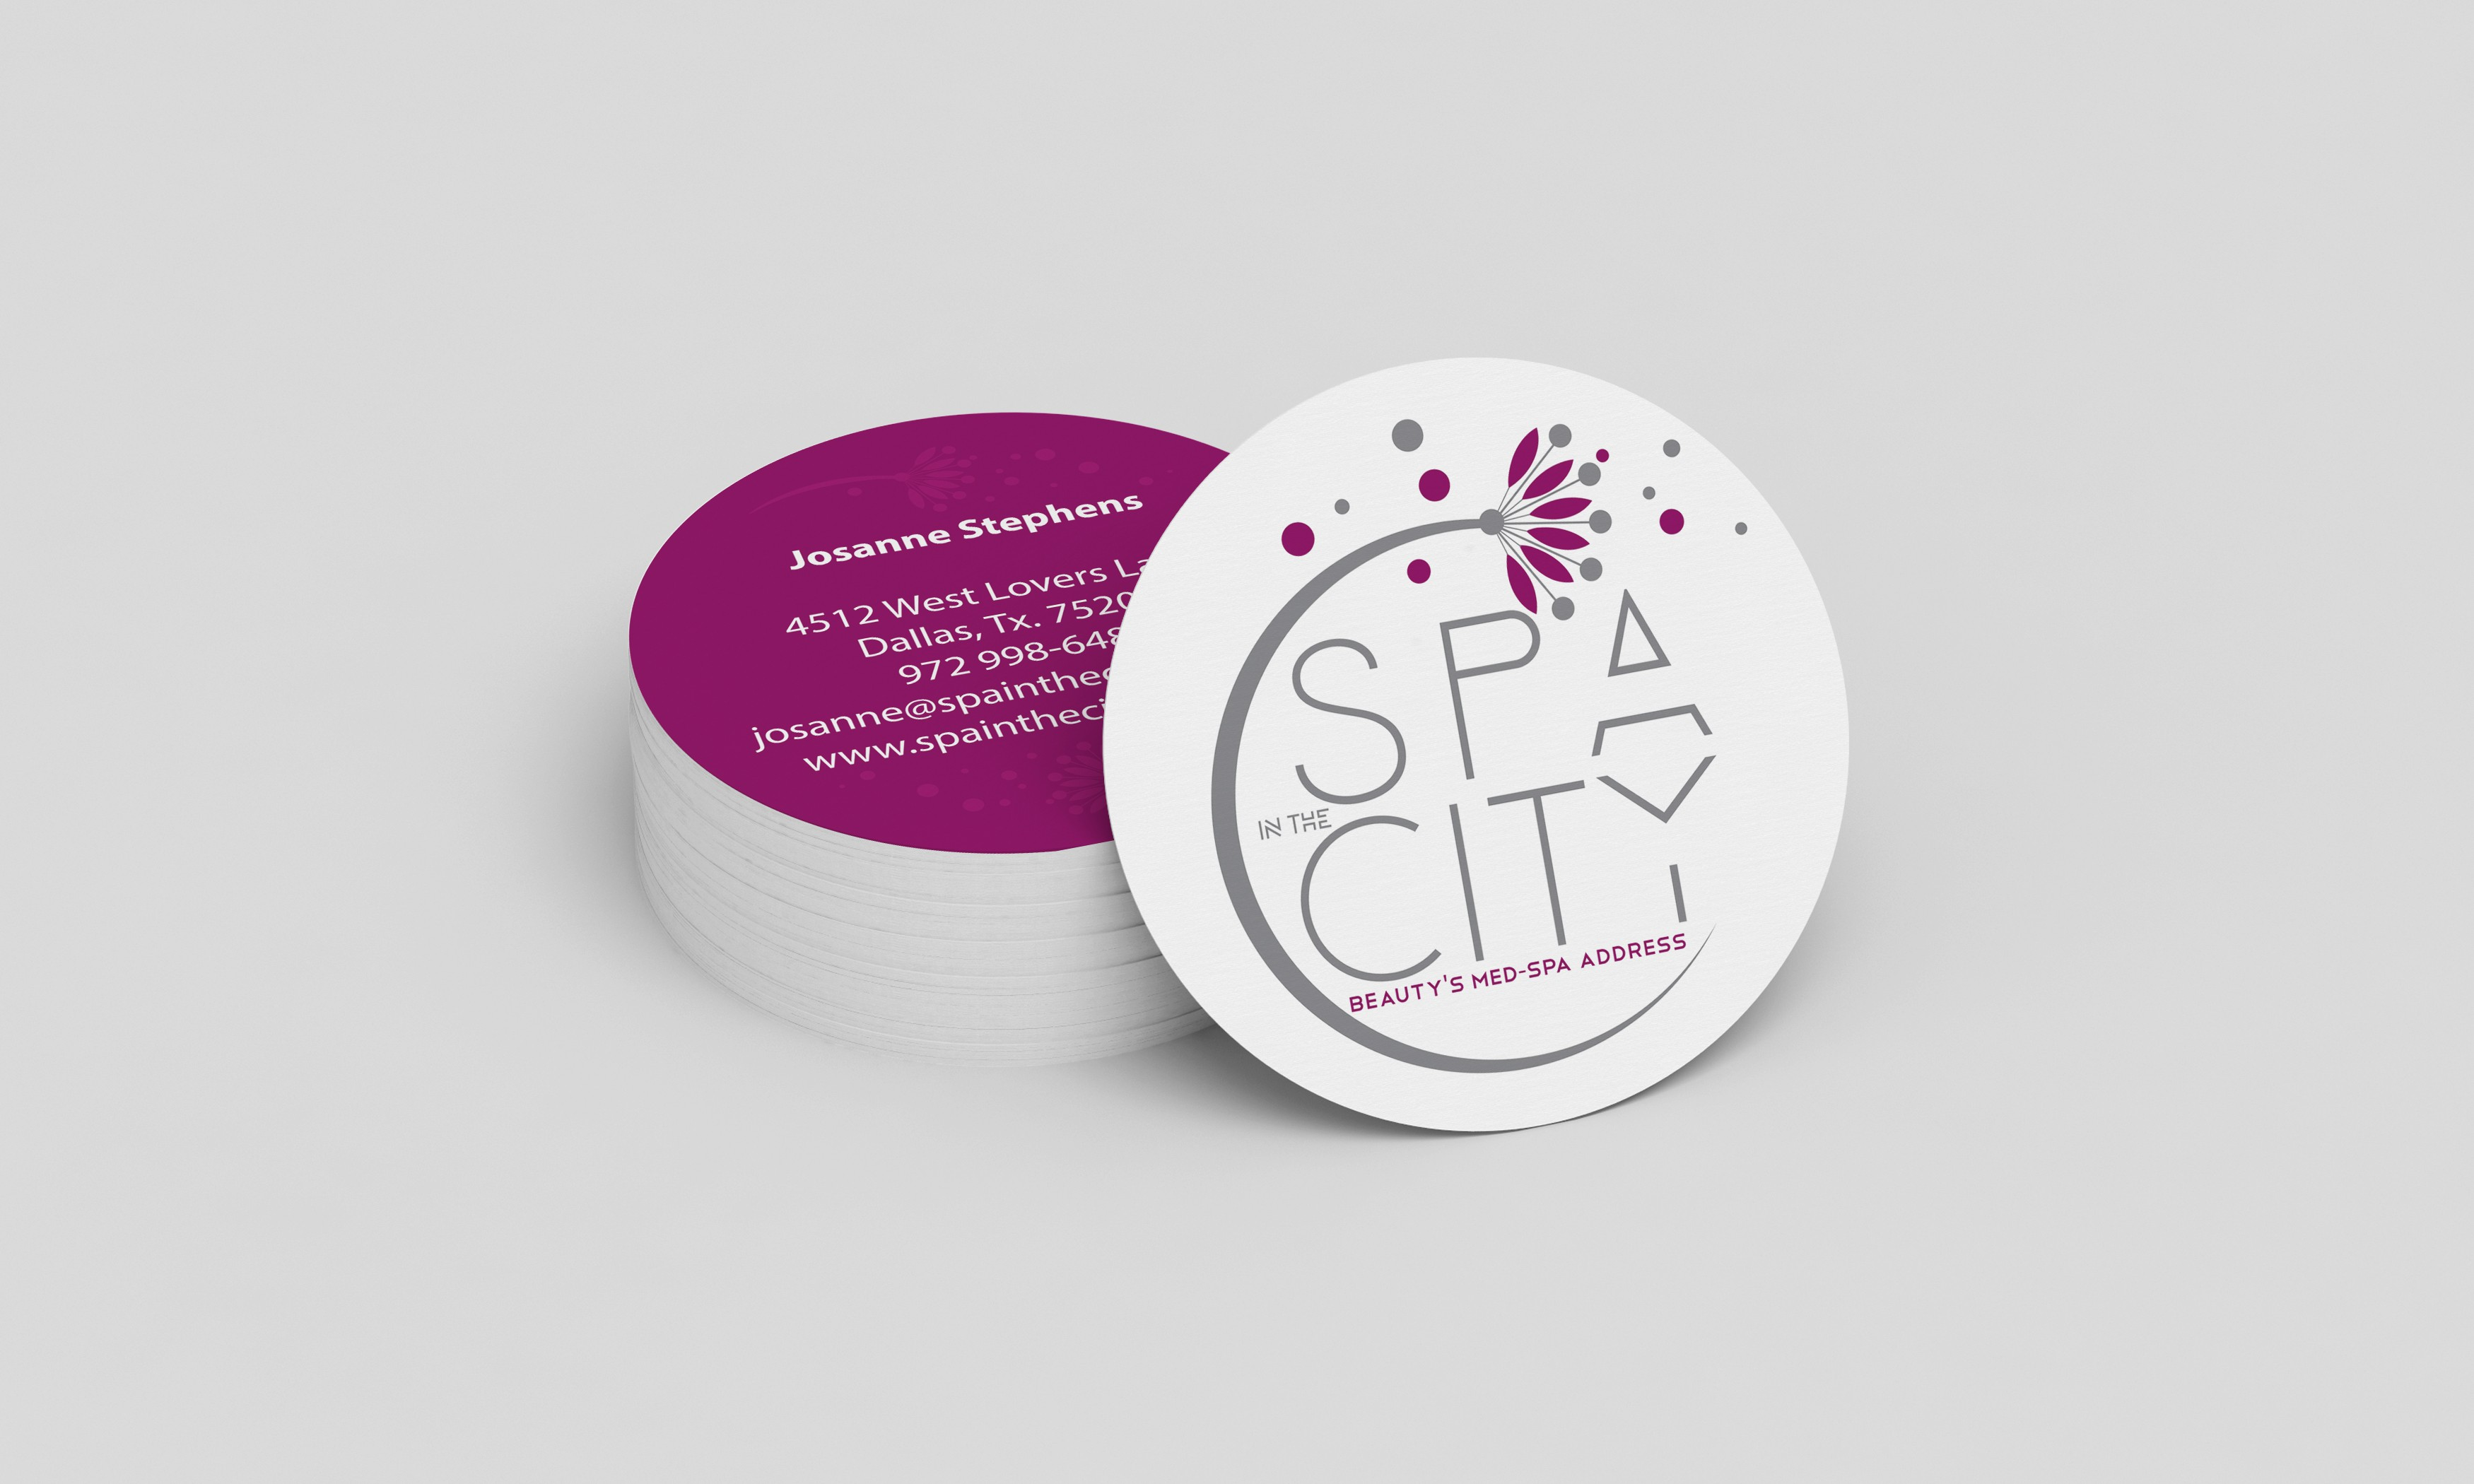 spa in the city business card with new logo